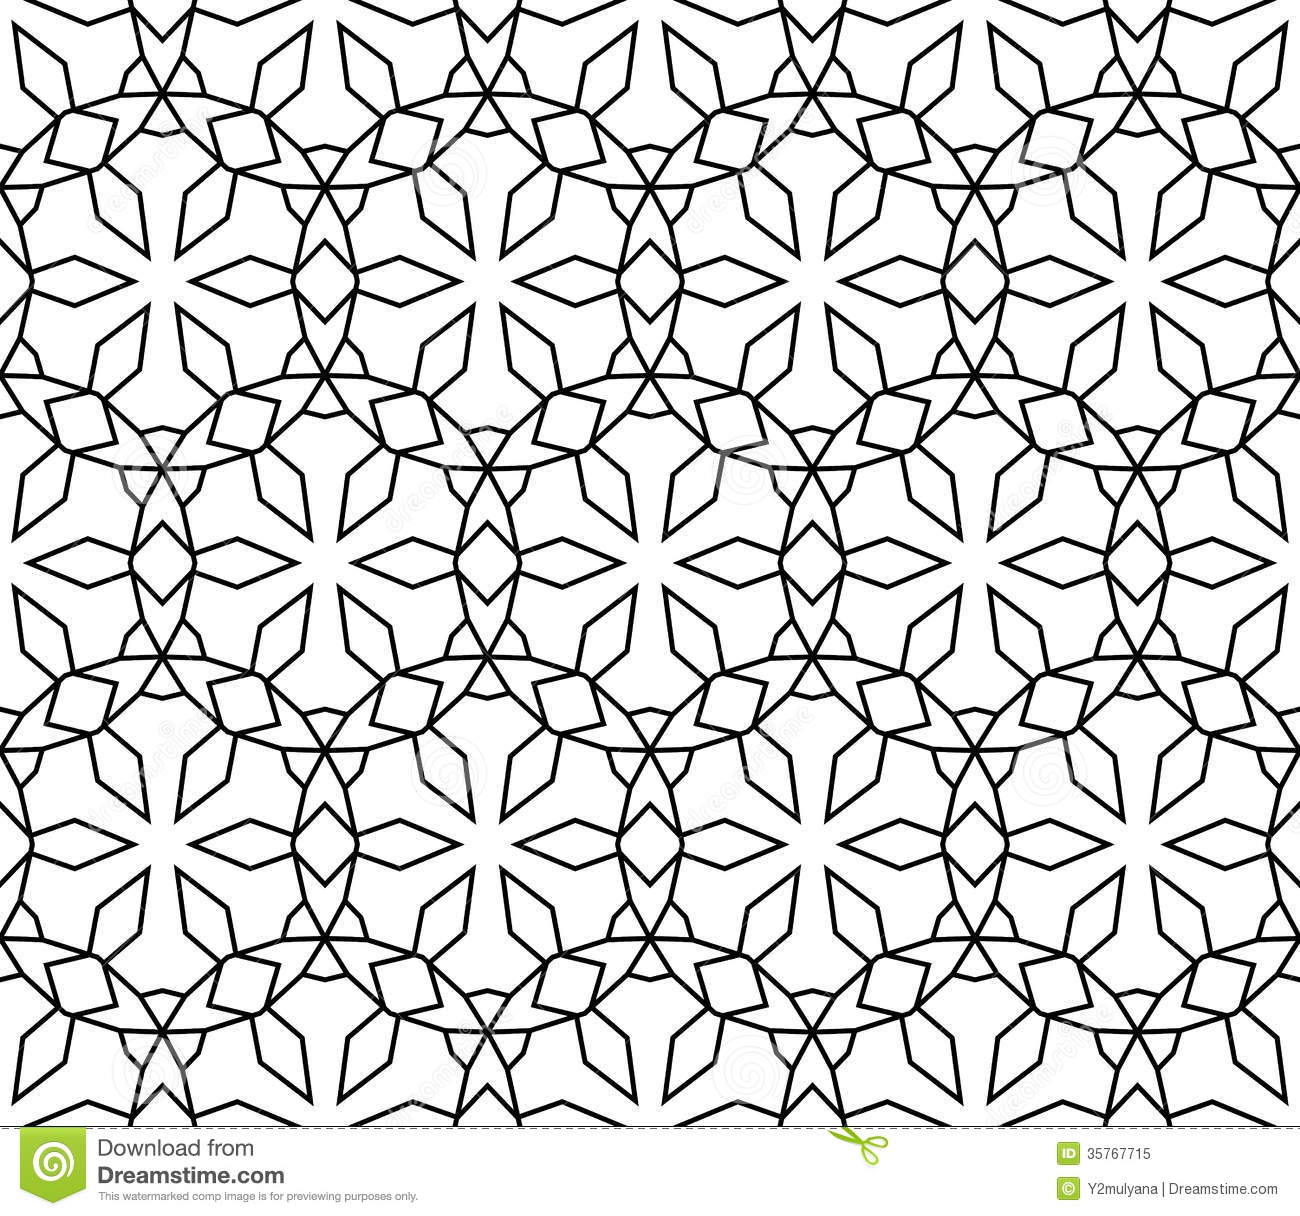 Line Drawing Wallpaper Uk : Geometric pattern stock illustration image of geometry